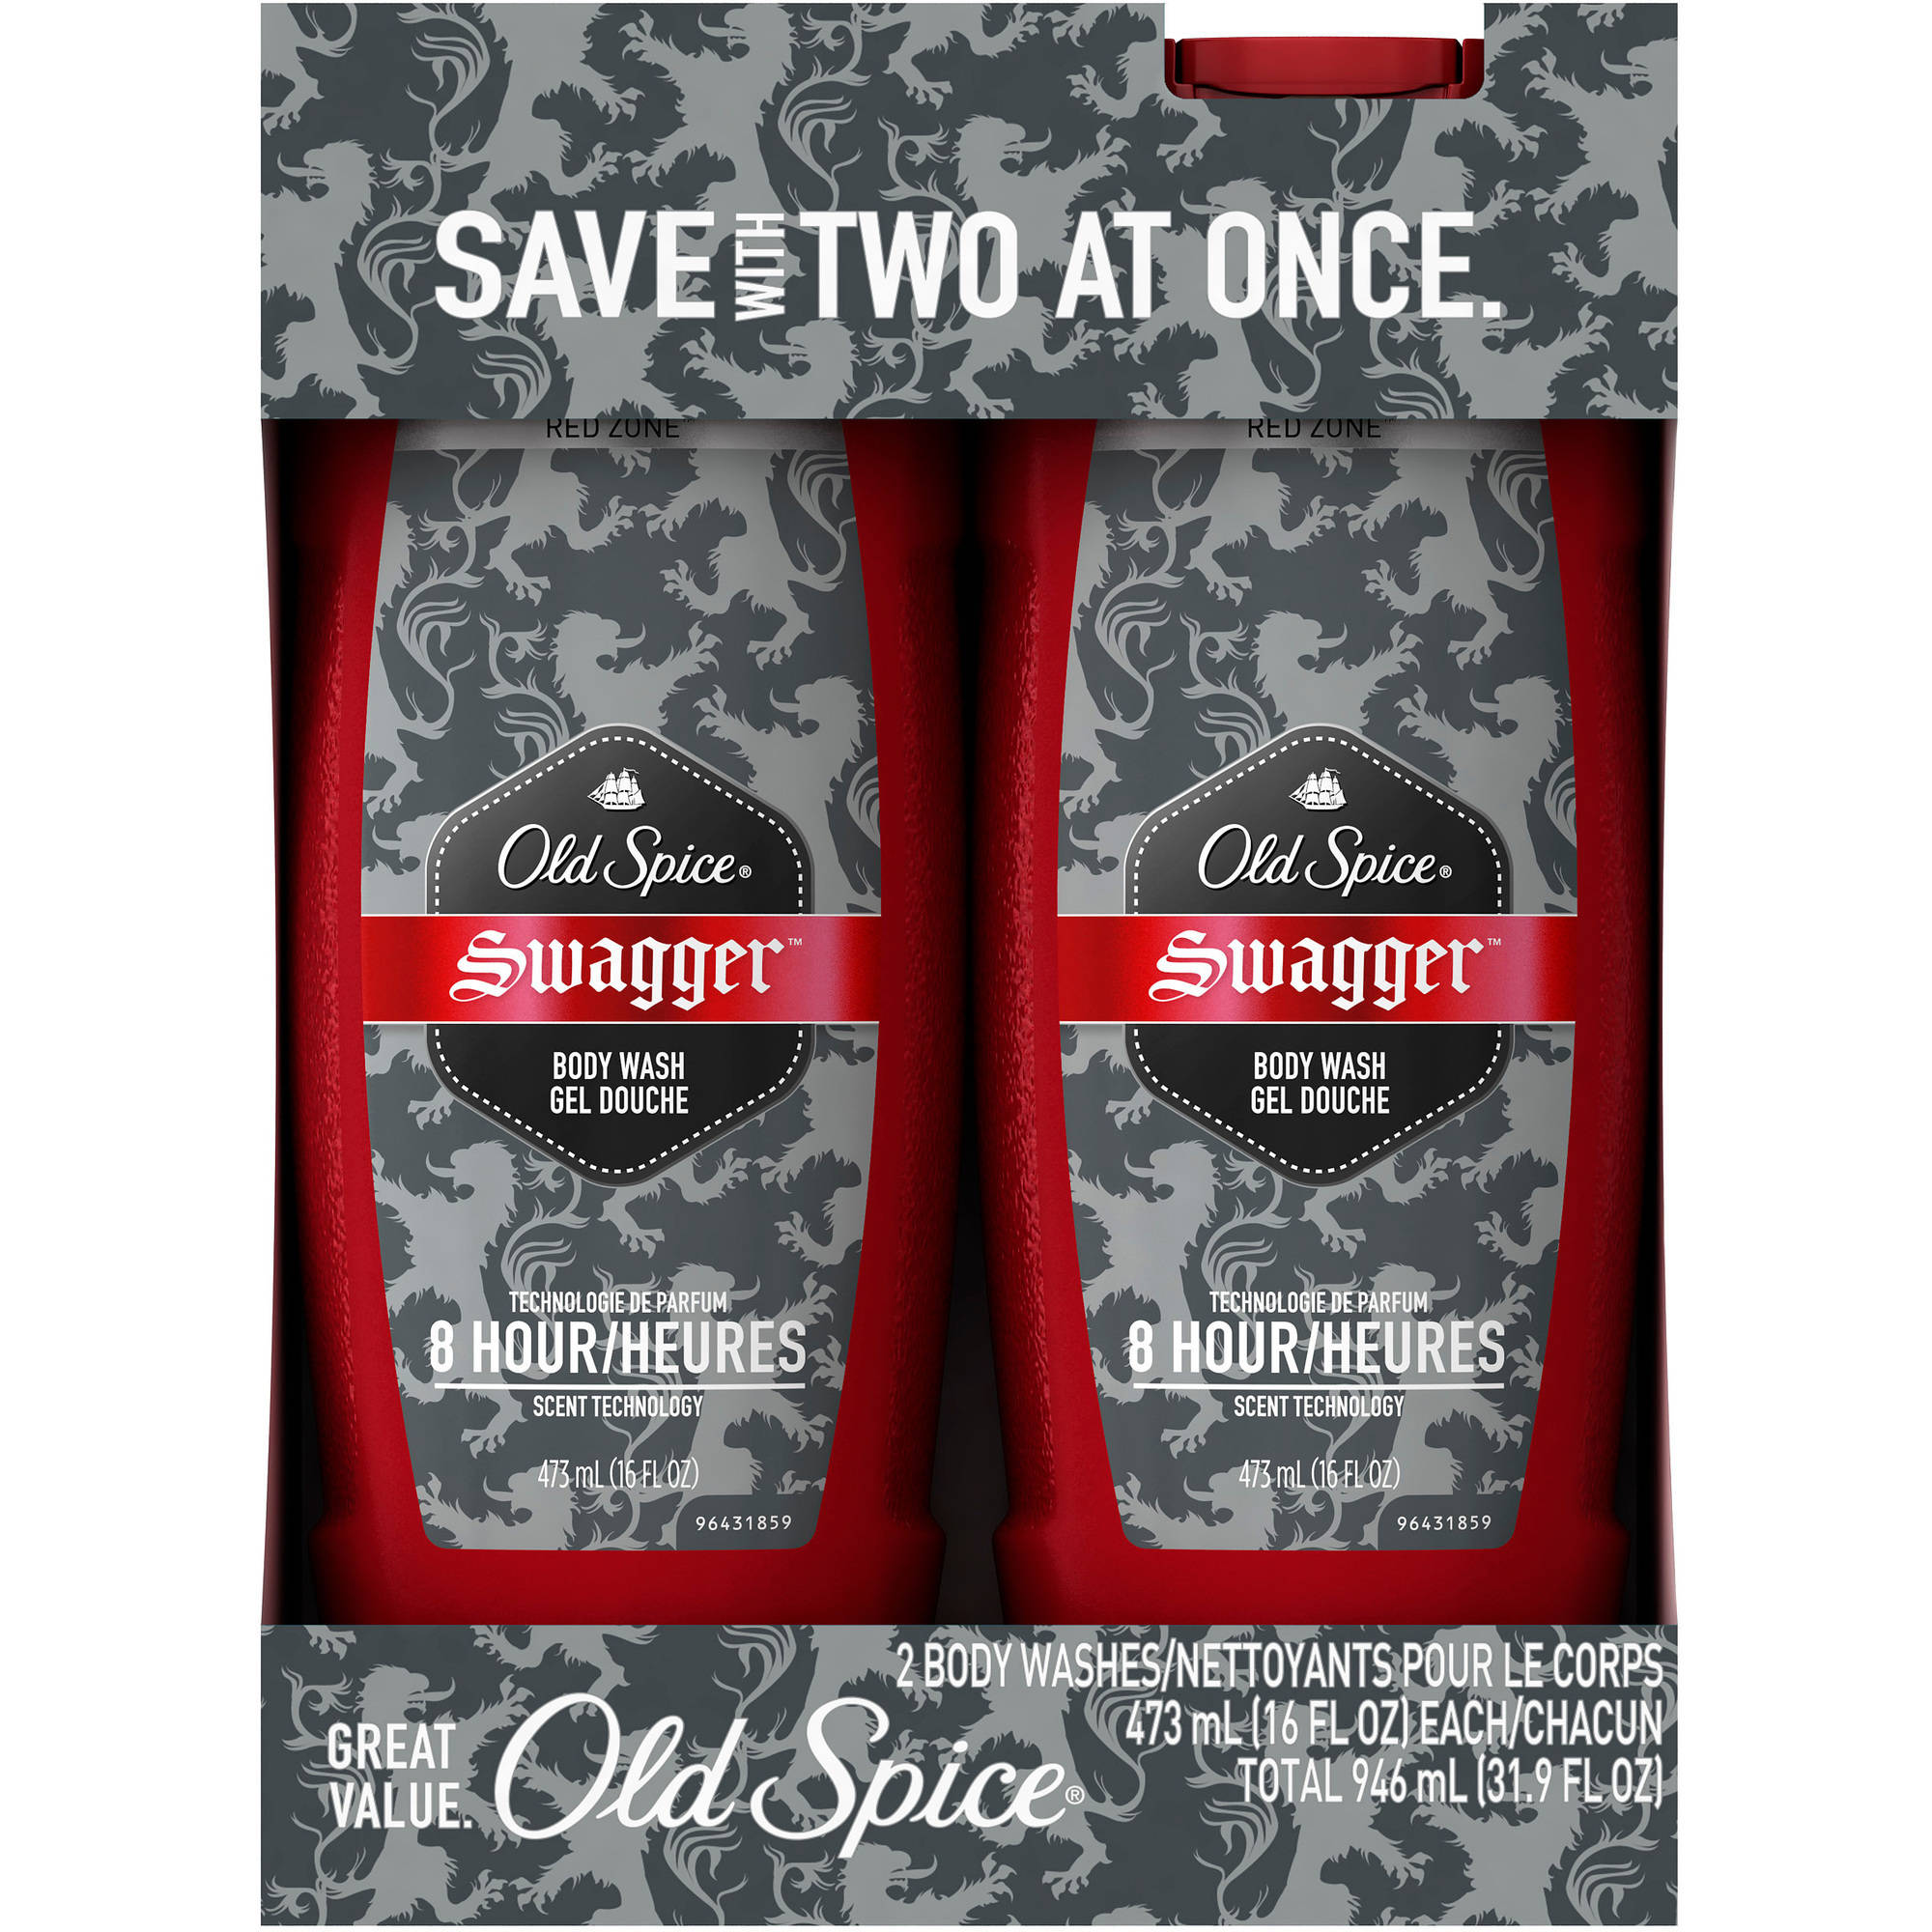 Old Spice Red Zone Swagger Scent Men's Body Wash, 16 fl oz, 2 count